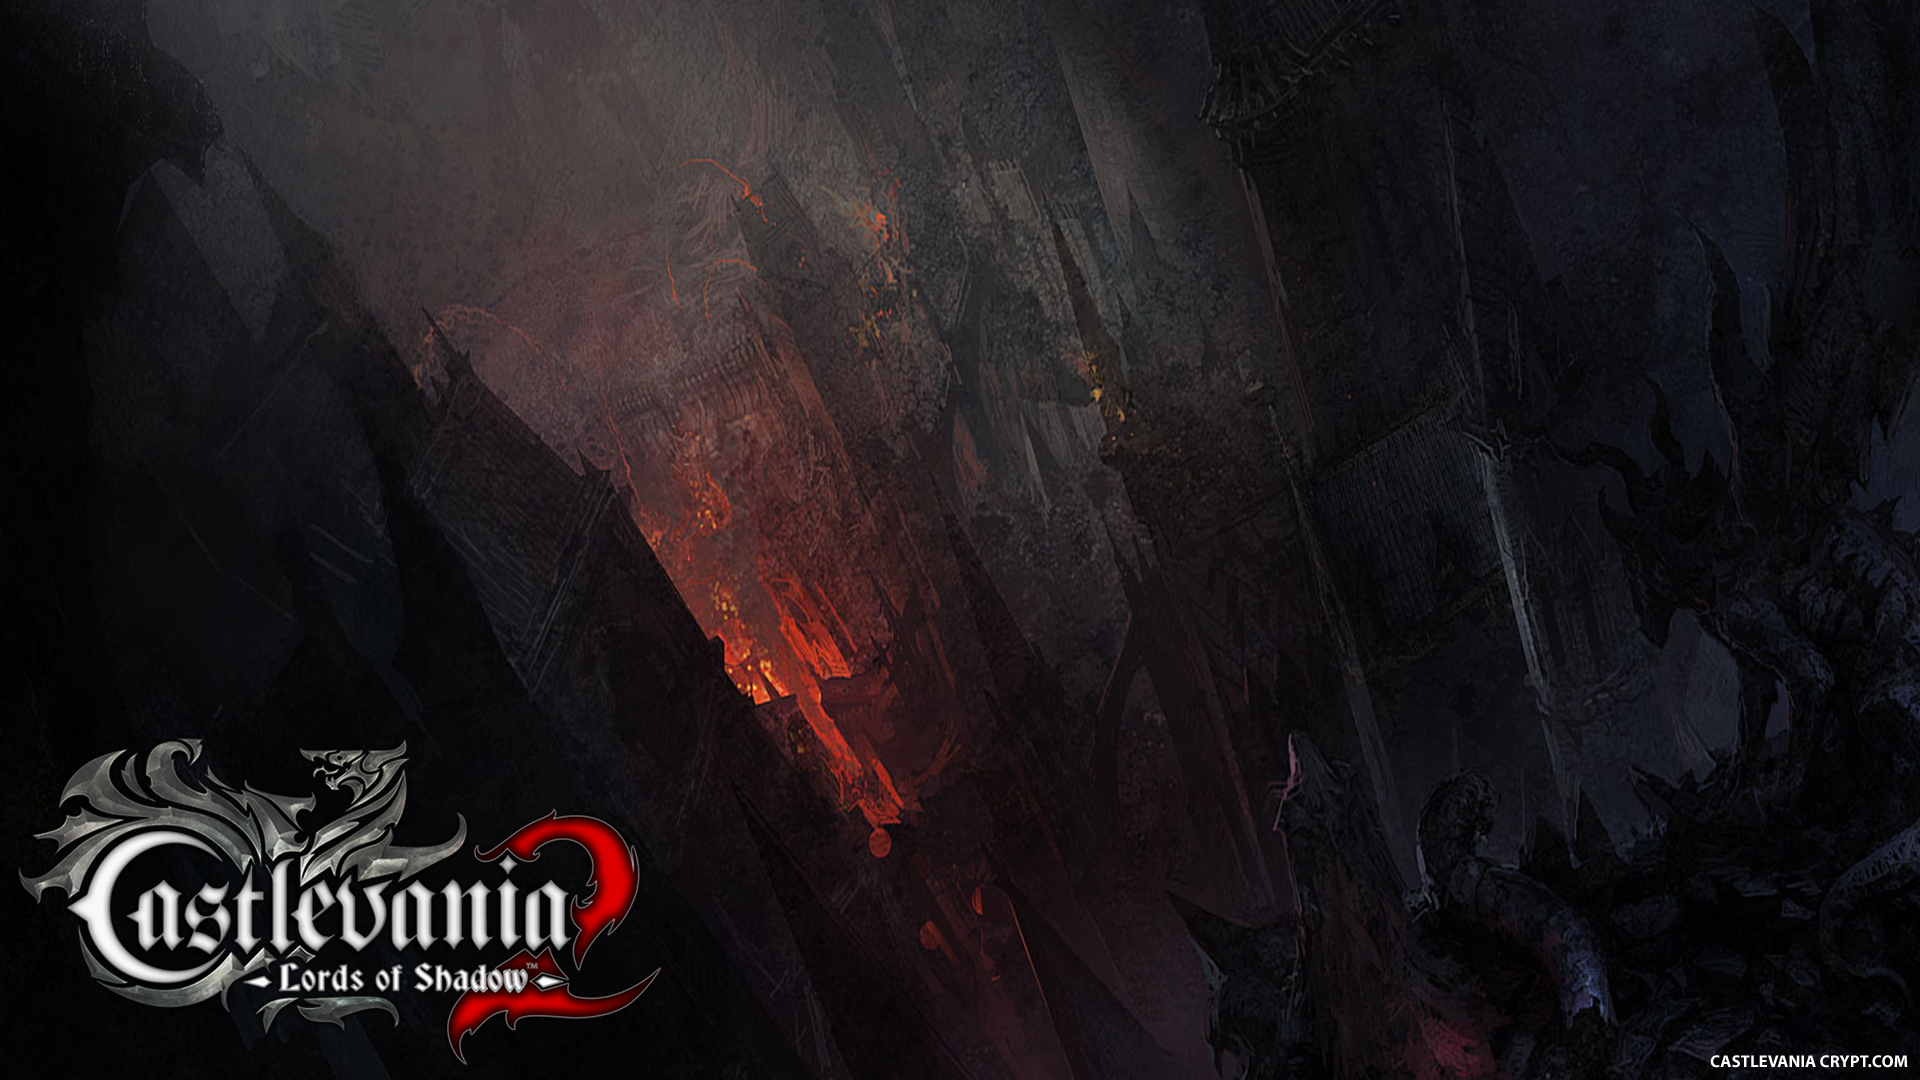 48 Castlevania Lords Of Shadow Wallpaper On Wallpapersafari